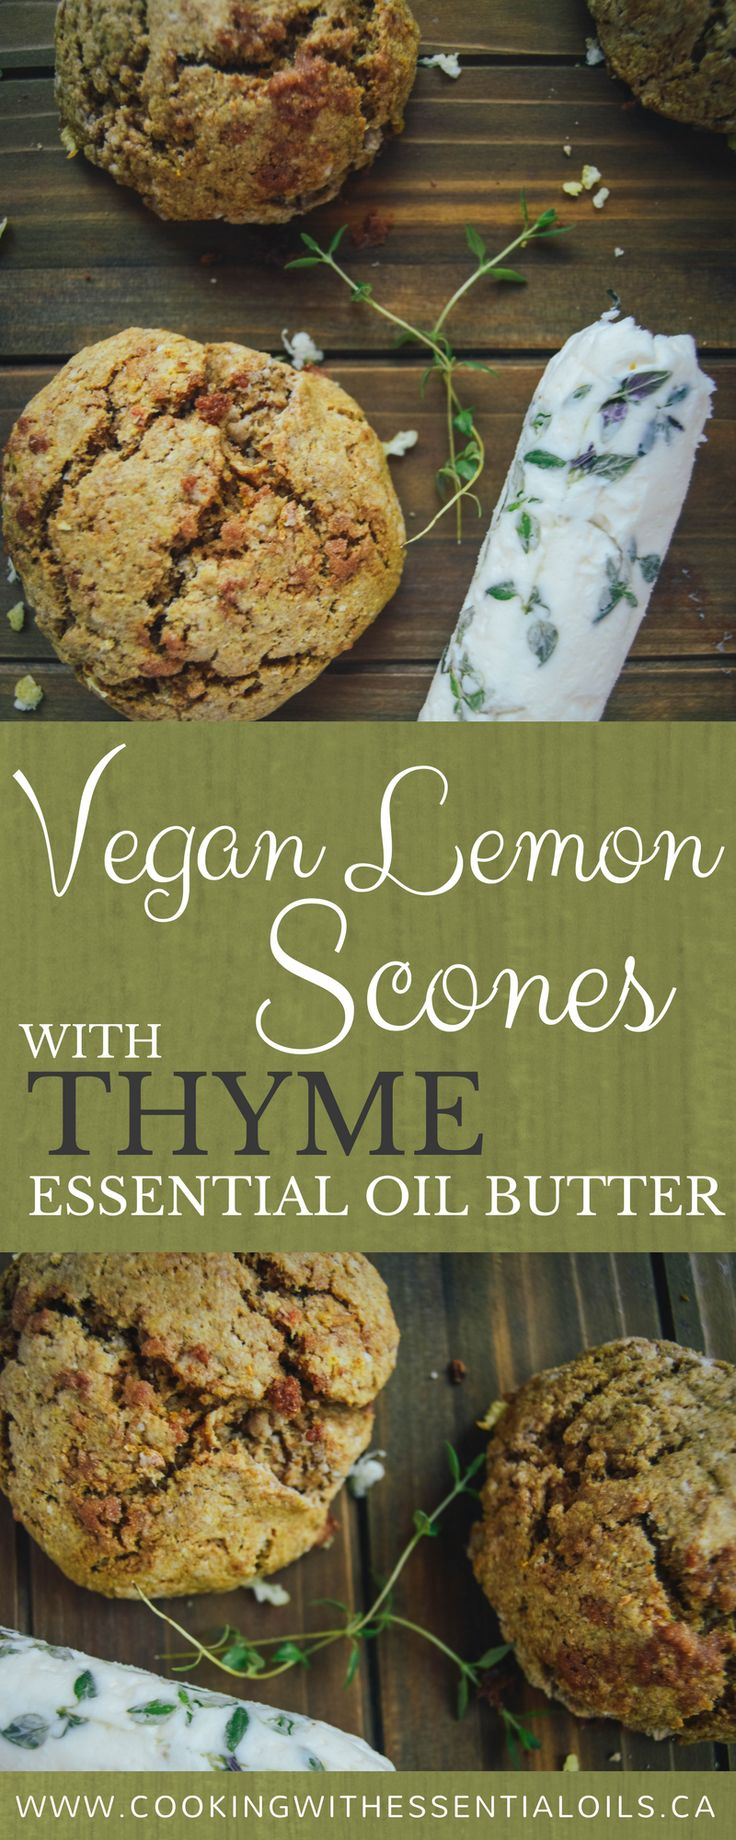 The recipes in this article has been created by fellow food blogger Amanda from Sweet Basil & Thyme who agreed to try essential oils in her own kitchen and share her experience. #thyme #essentialoil #vegan